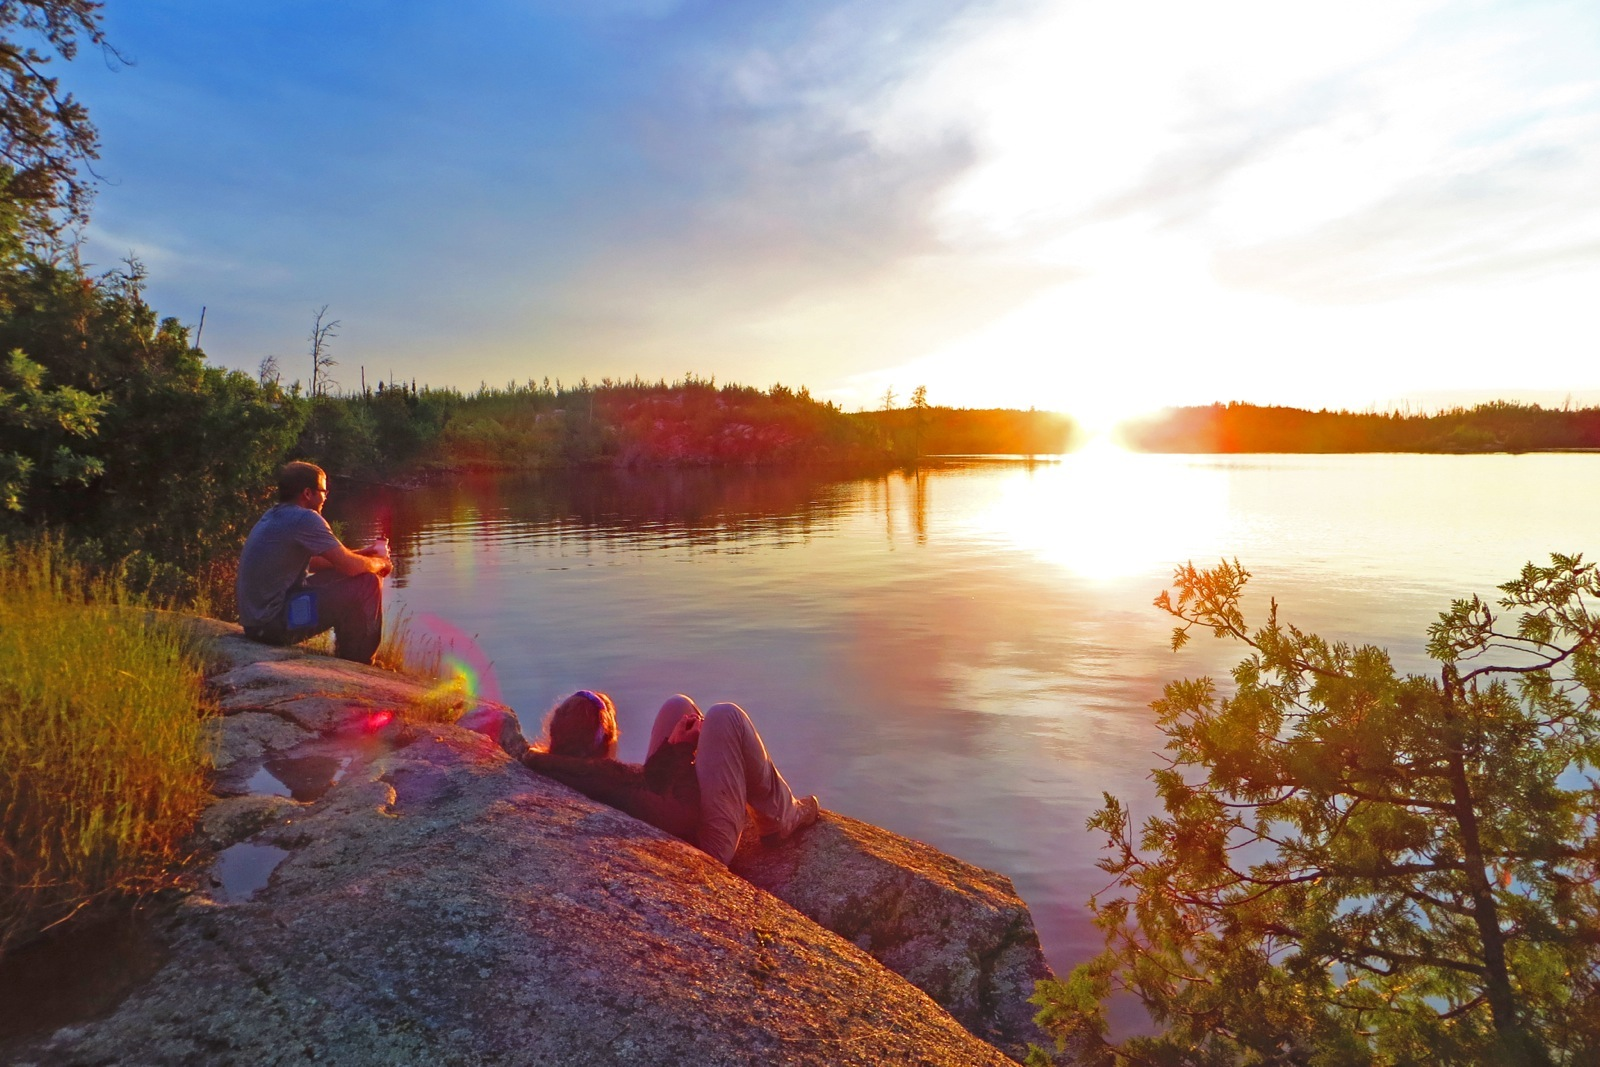 two participants sit on a rock by the lake enjoying the yellow and blue sunset